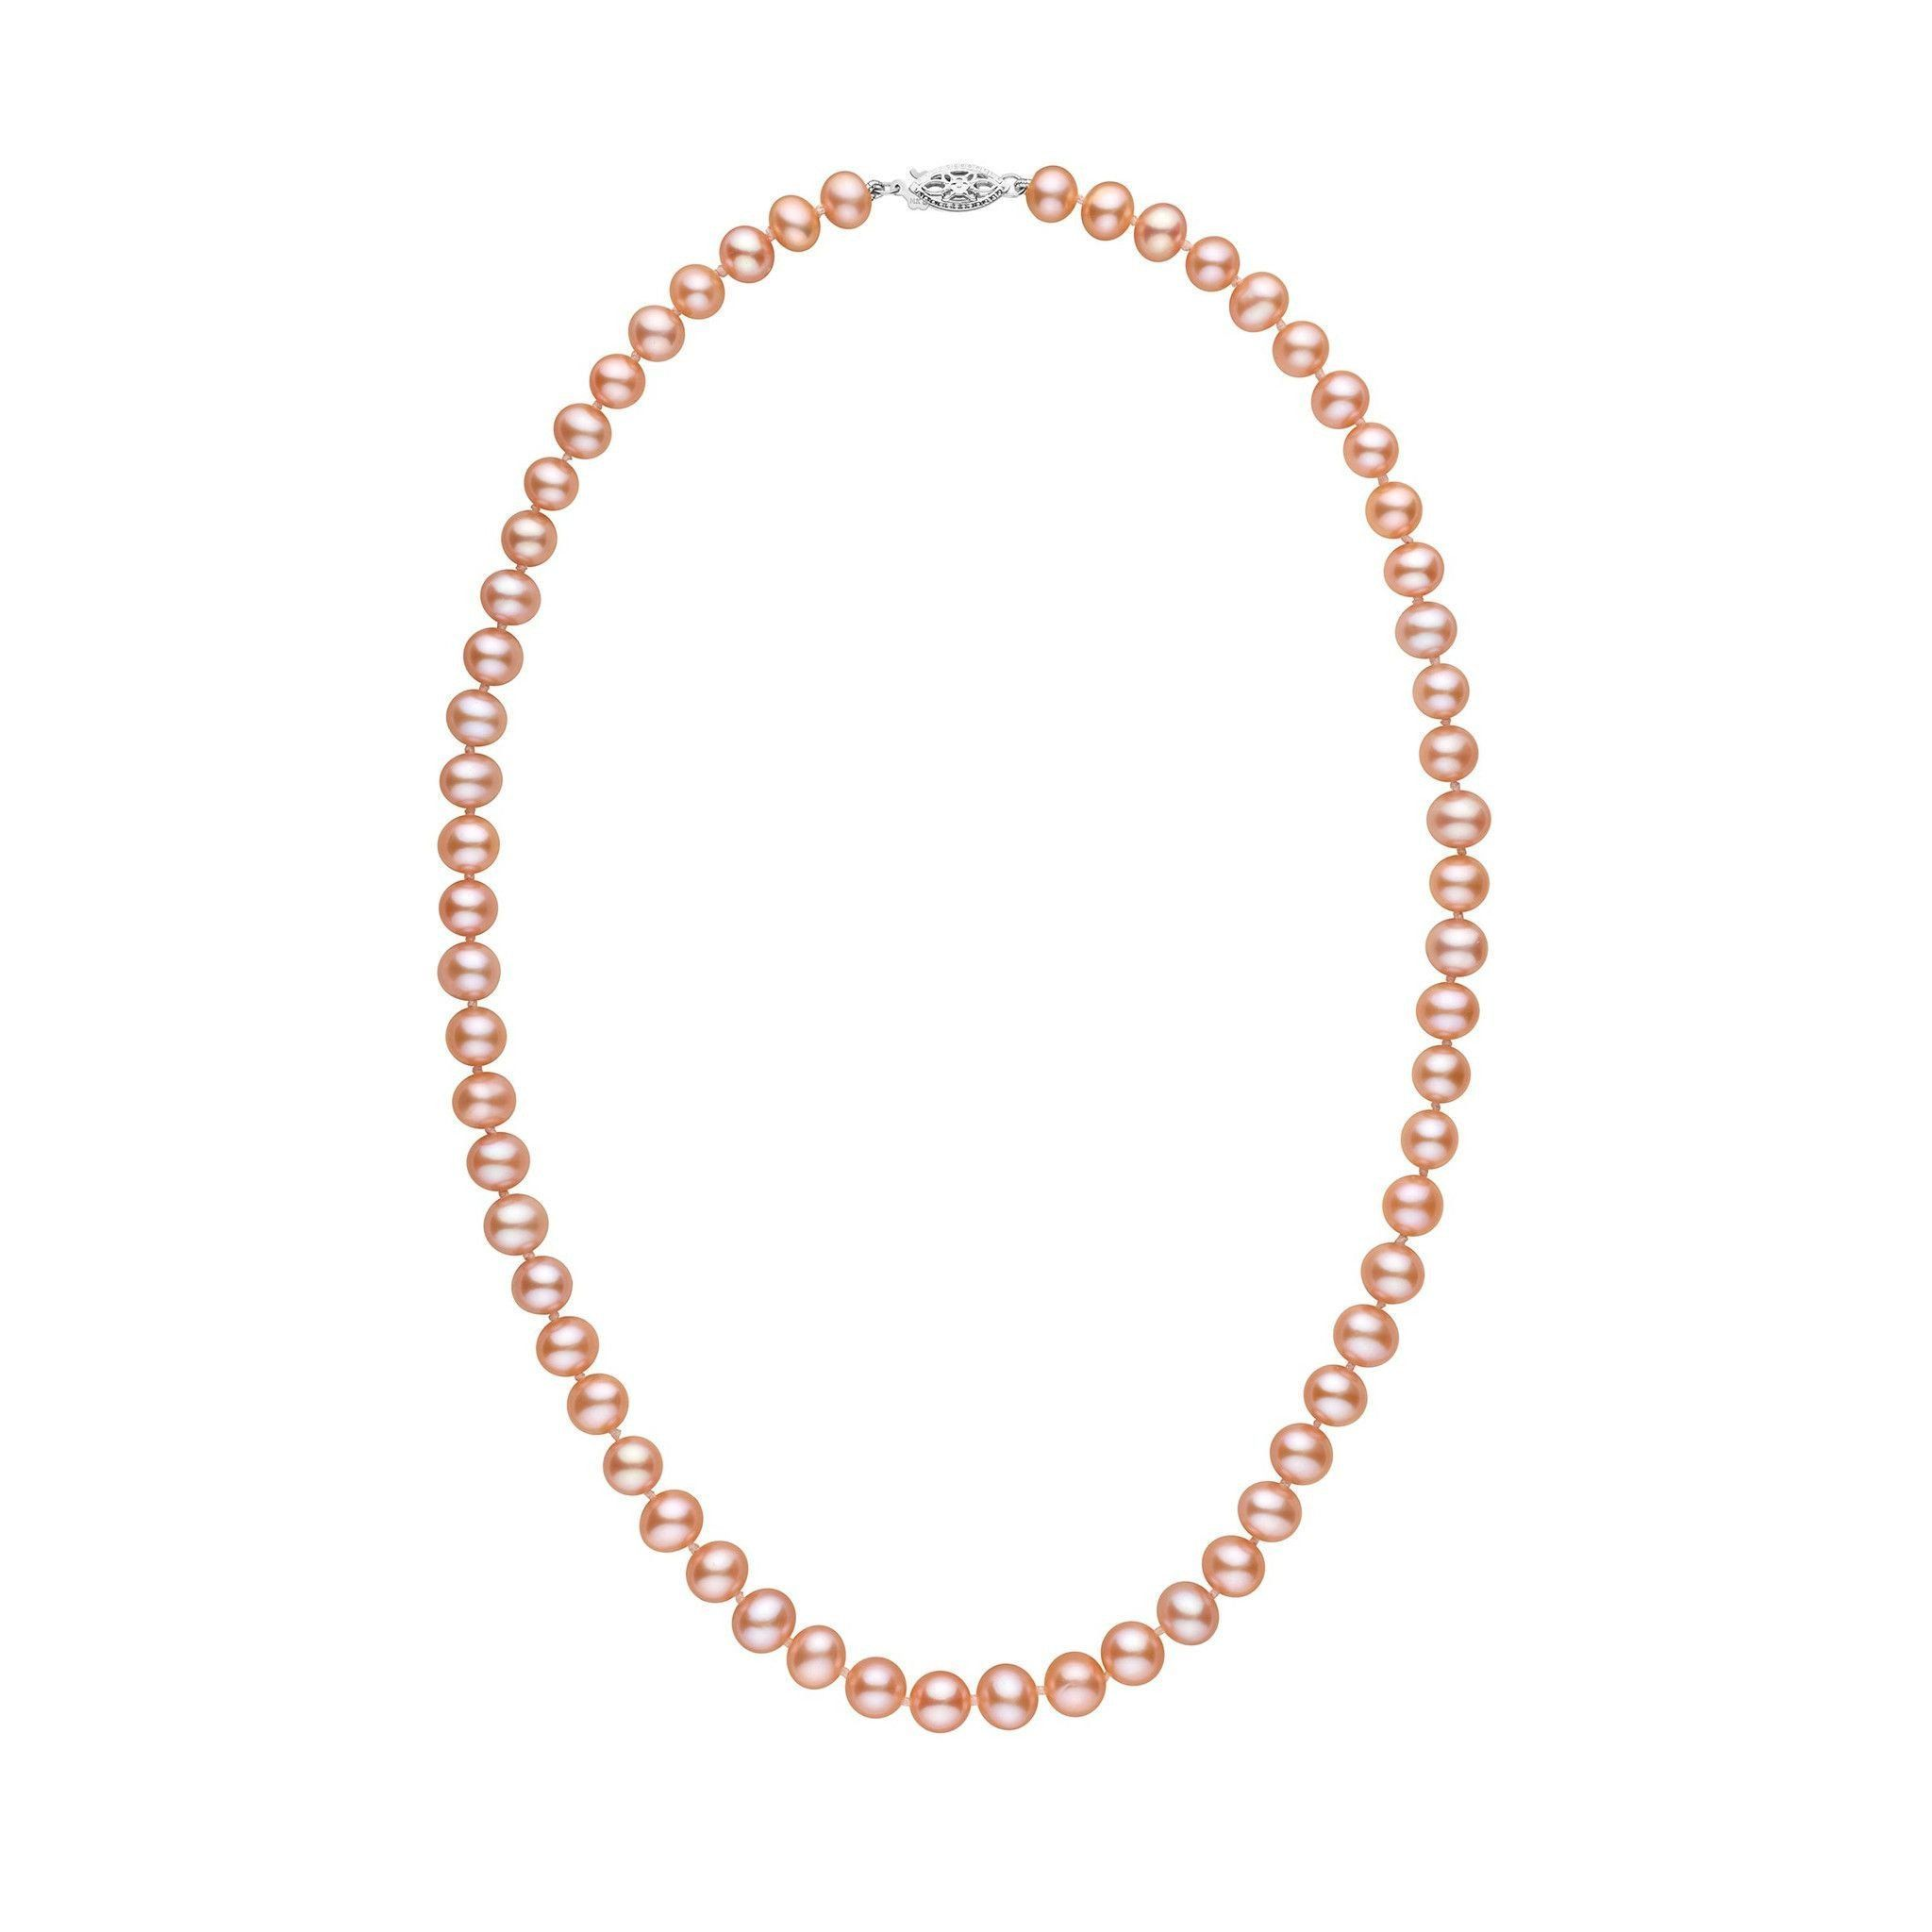 6.5-7.0 mm 18 Inch AA+ Pink to Peach Freshwater Pearl Necklace